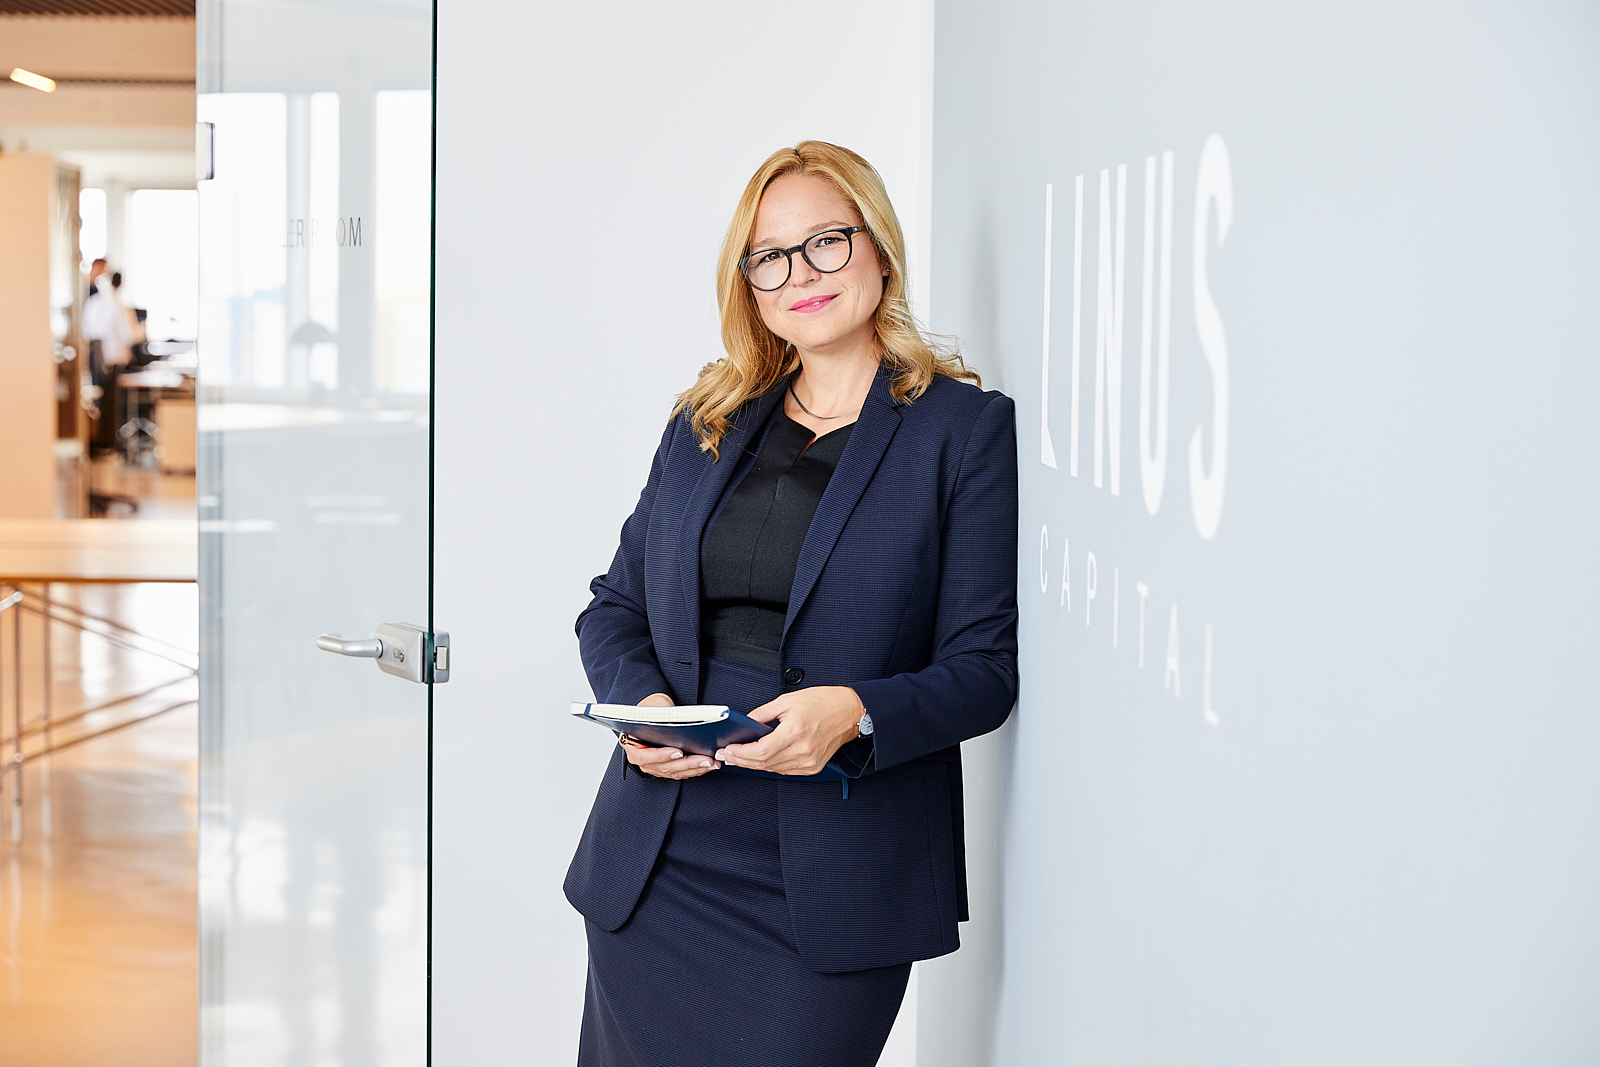 LINUS Digital Finance appoints Julia Kneist as Chief Risk Officer